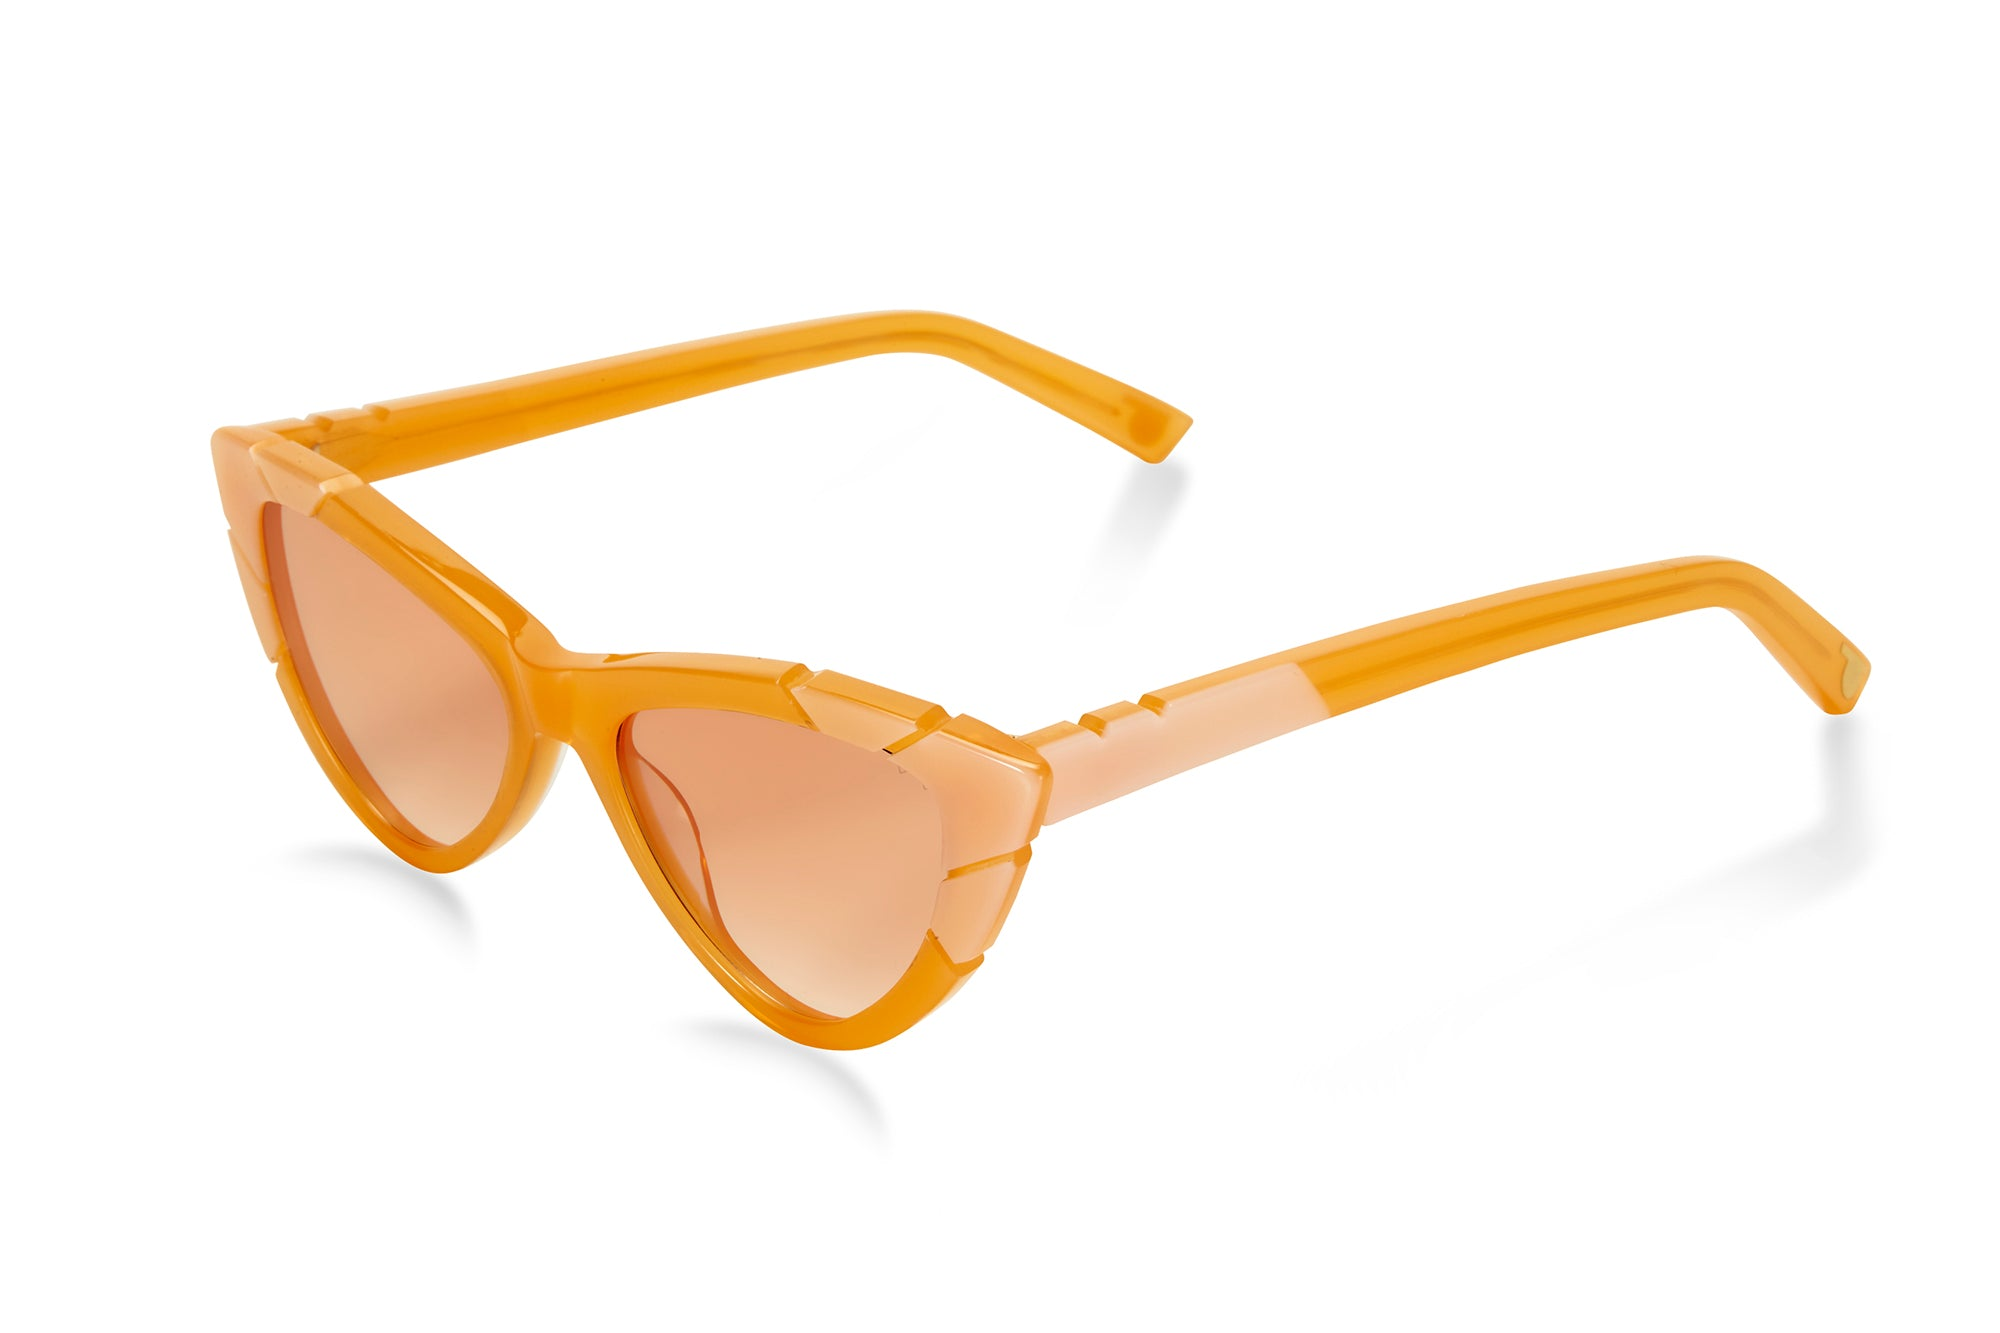 Pared Sunglasses - Salty Capsule Collection - Piccolo Grande